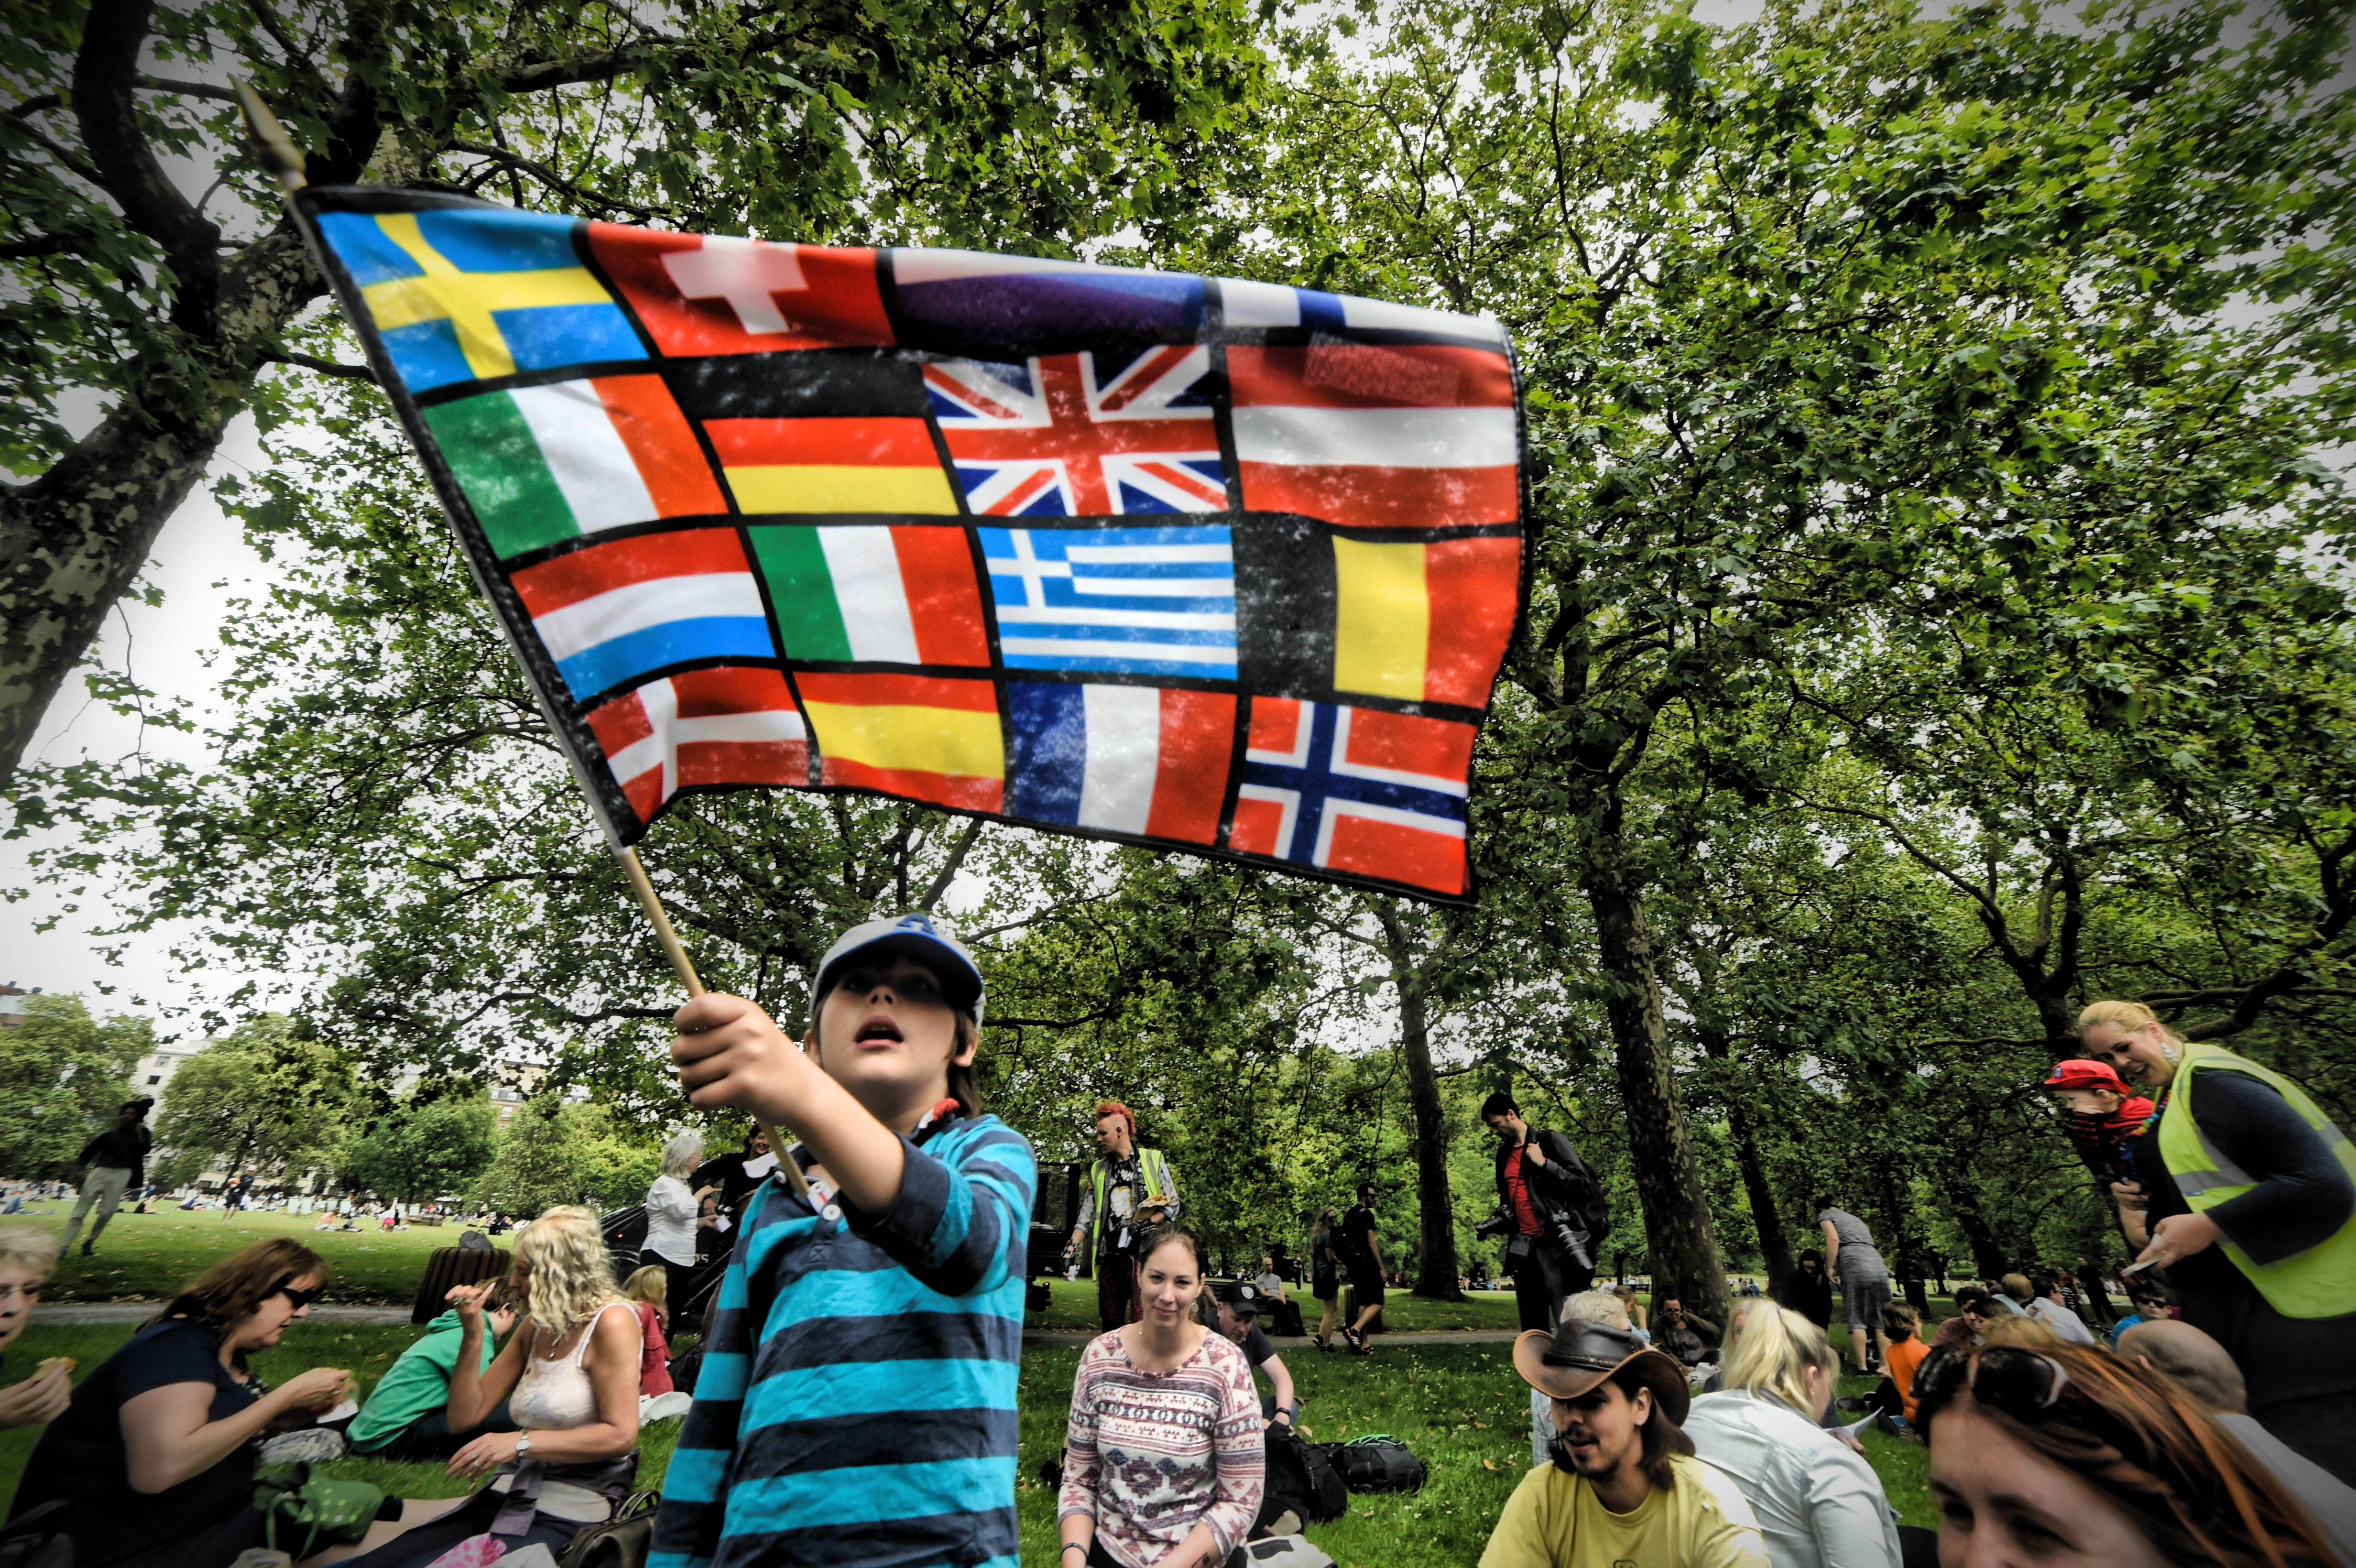 Pro-European Union supporters and pro-Brexit supporters hold up placards during a demonstration against Brexit in Green Park in London on July 9, 2016.